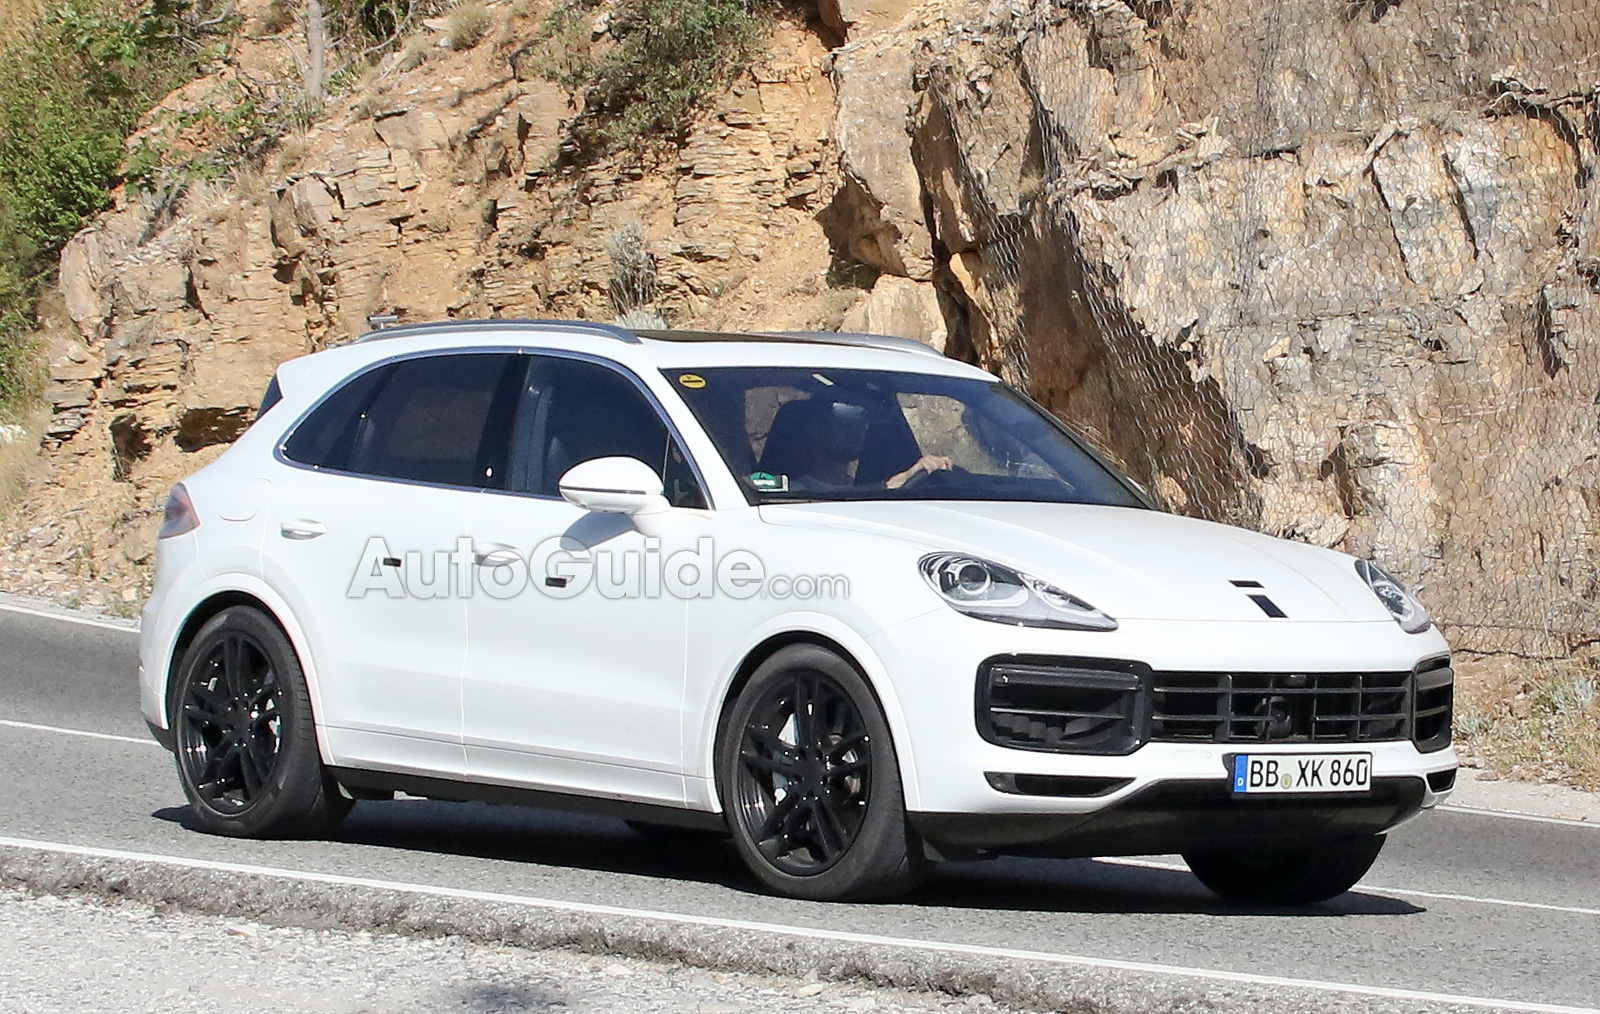 2018 Porsche Cayenne White Spy Photos 05